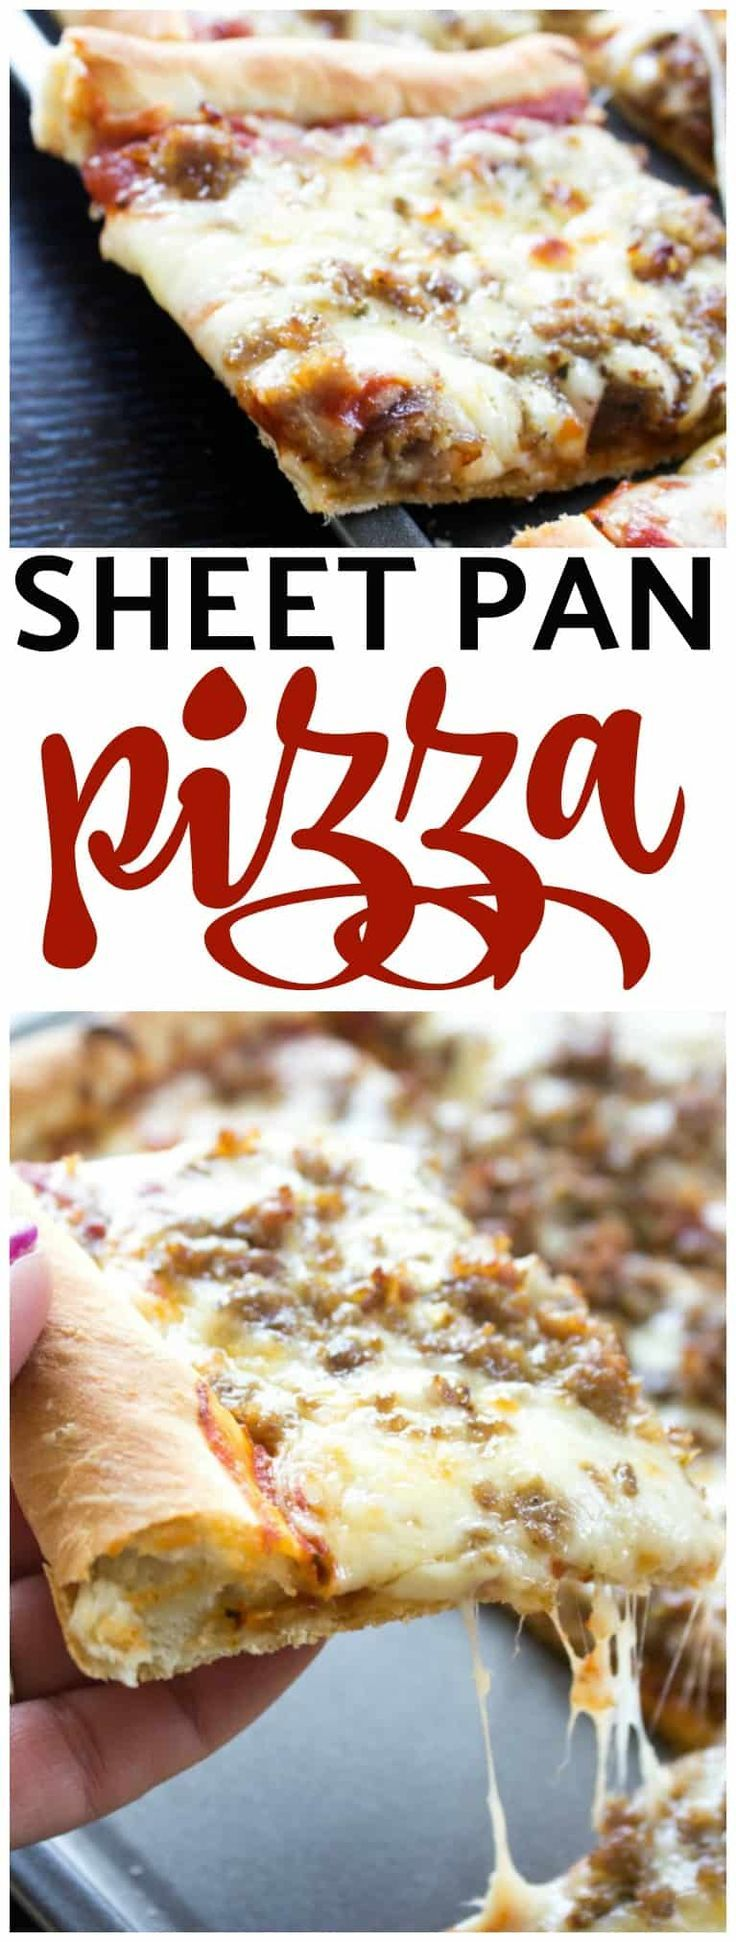 SHEET PAN PIZZA - Simple, made from-scratch with a no rise pizza crust & loaded with your favorite toppings, it will become your Friday night to-go-to. #pizza #pizzadough #dough #pizzaparty #sheetpan #recipe #familydinner